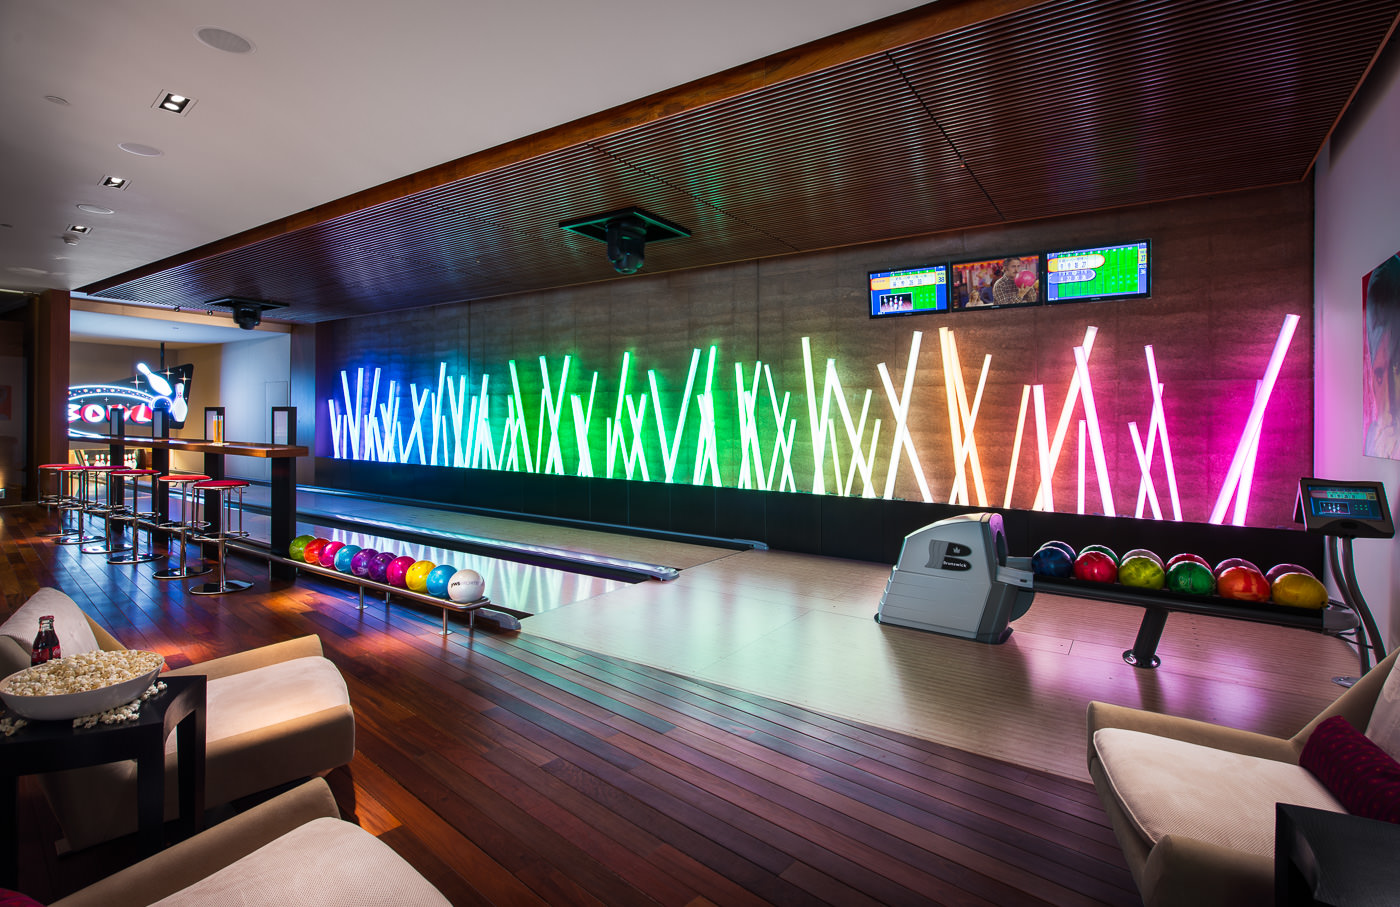 Private bowling alley interior design ideas for Villa de luxe moderne interieur